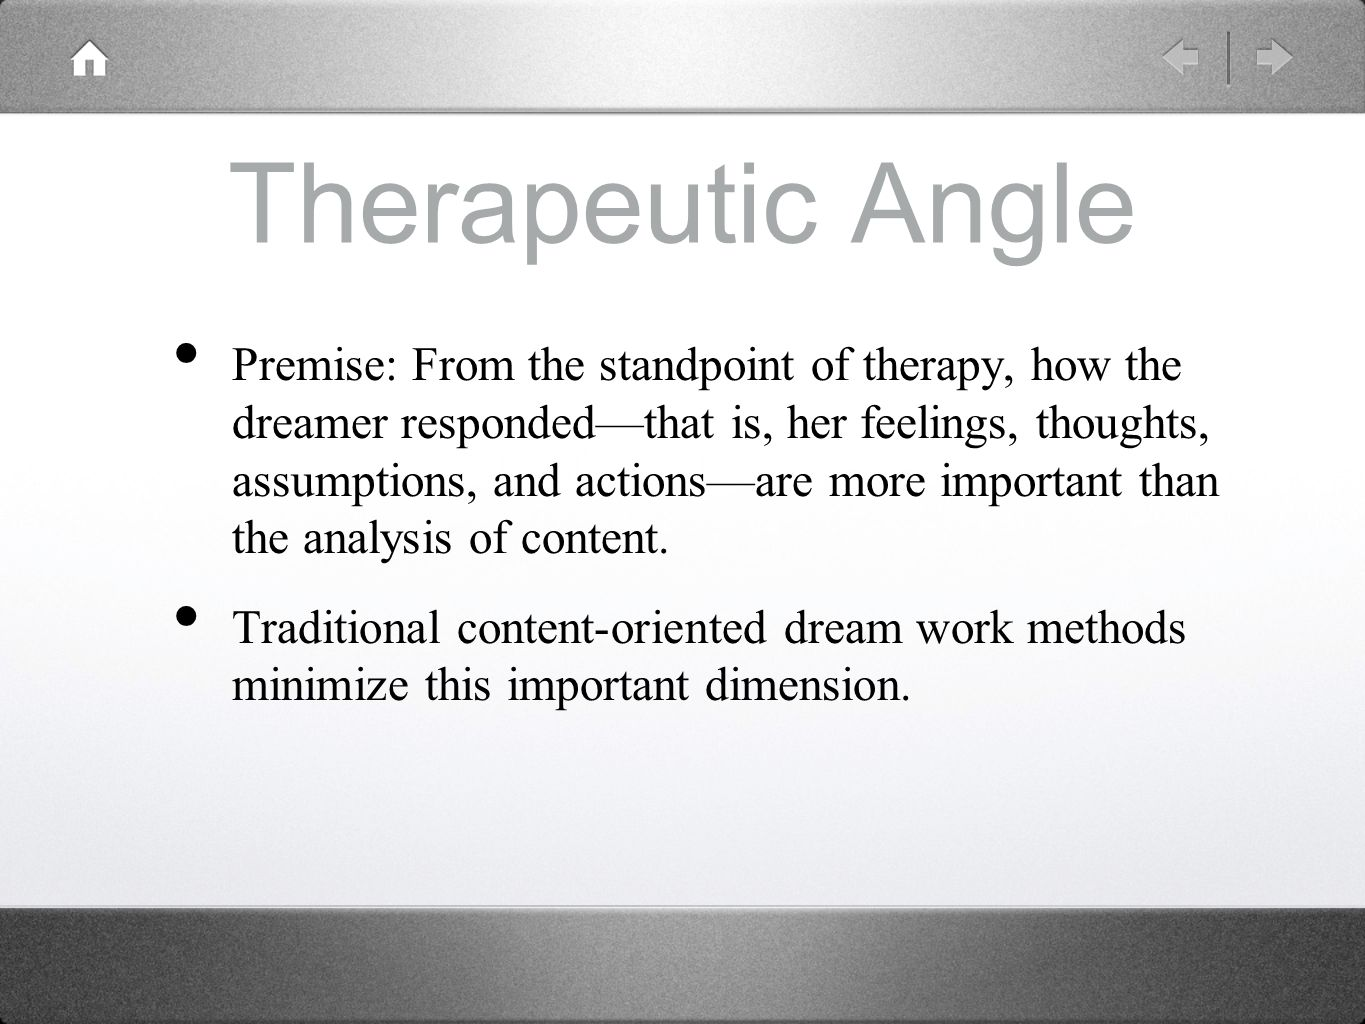 Therapeutic Angle Premise: From the standpoint of therapy, how the dreamer responded––that is, her feelings, thoughts, assumptions, and actions––are more important than the analysis of content.